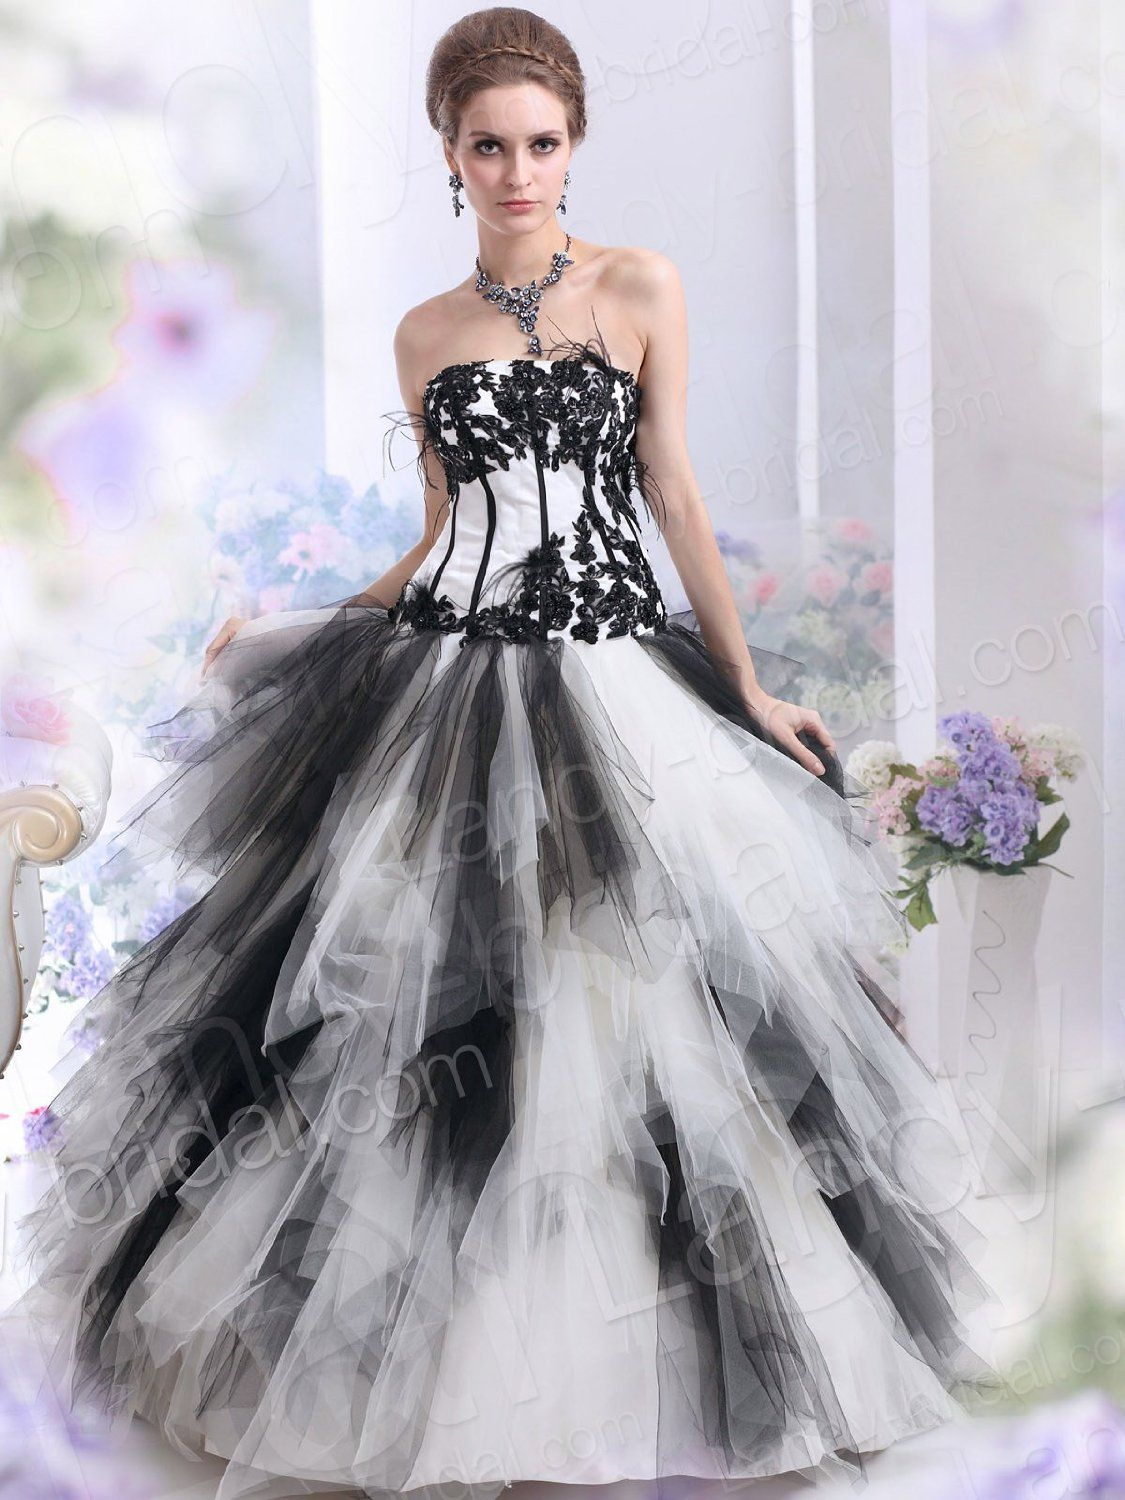 black and white gothic wedding dress Wallpaper | wedding- me ...